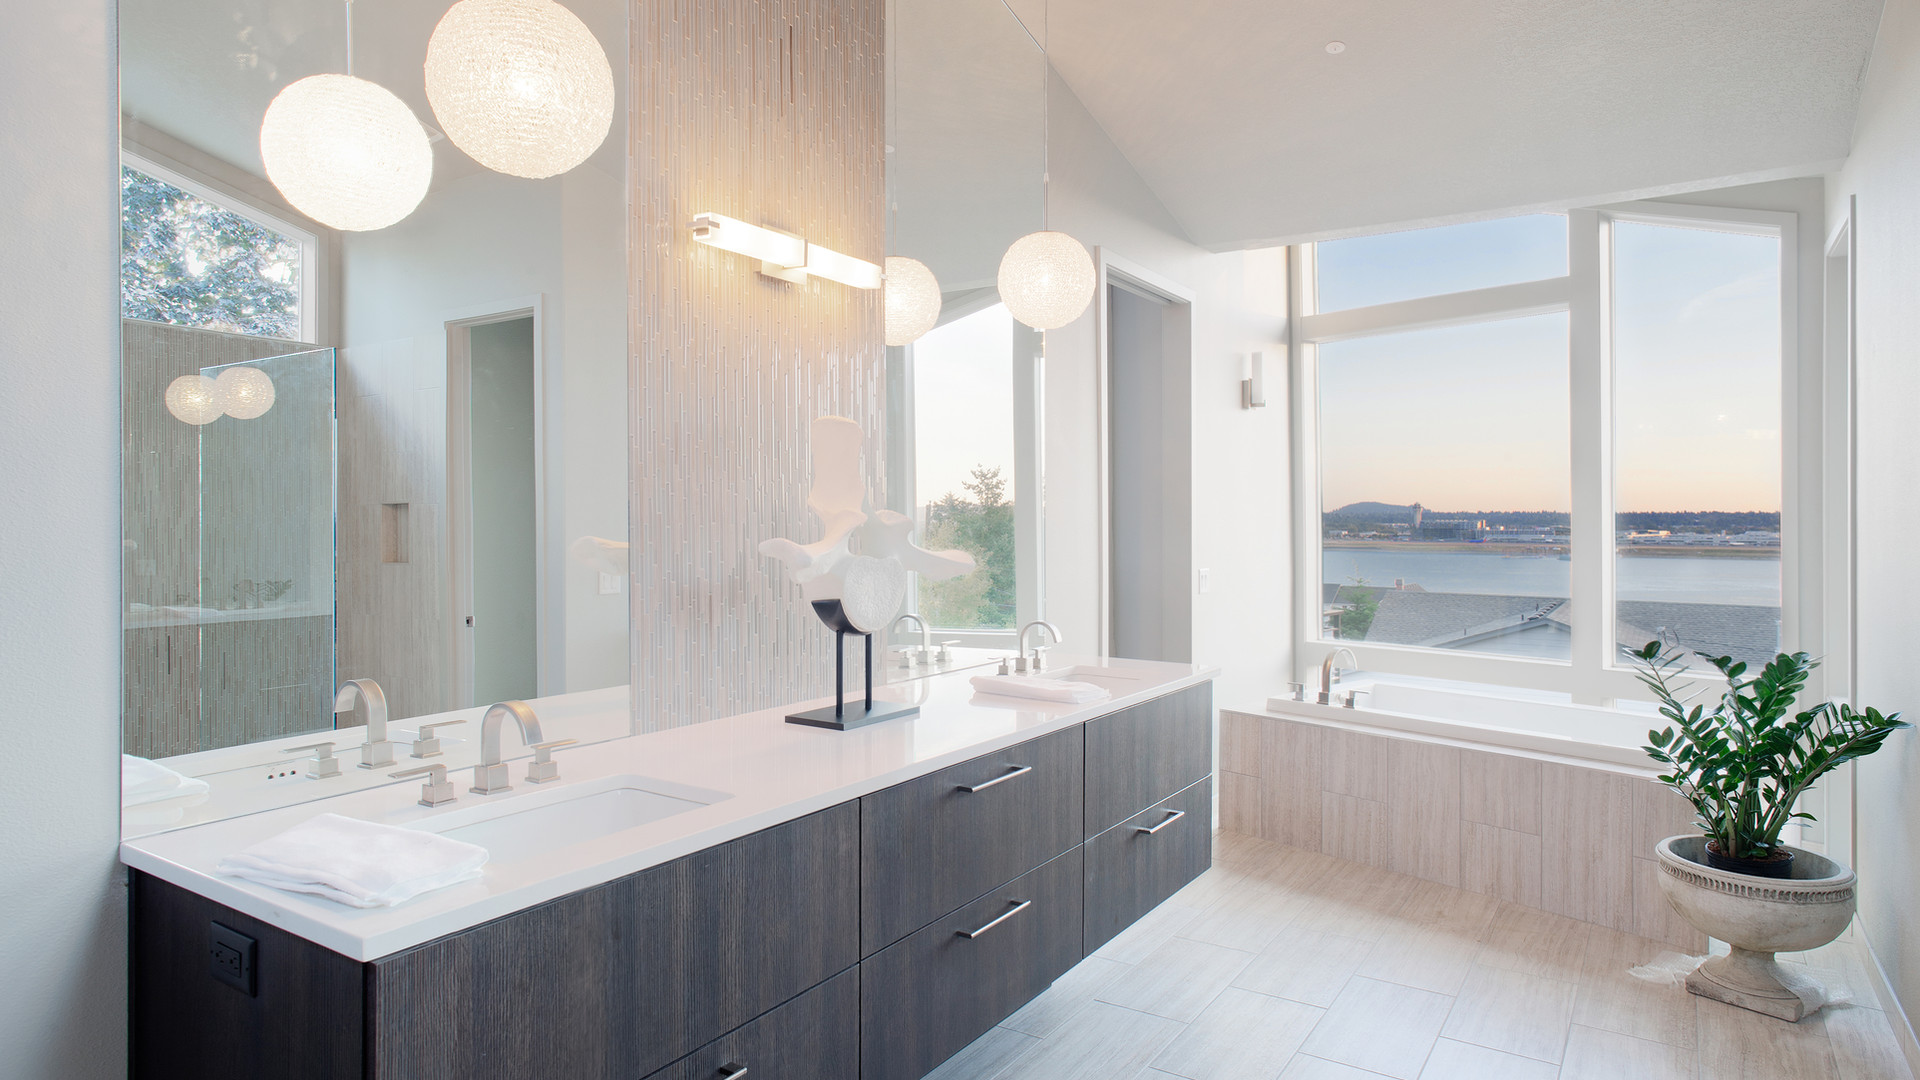 luxury-bathroom-27261022.jpg